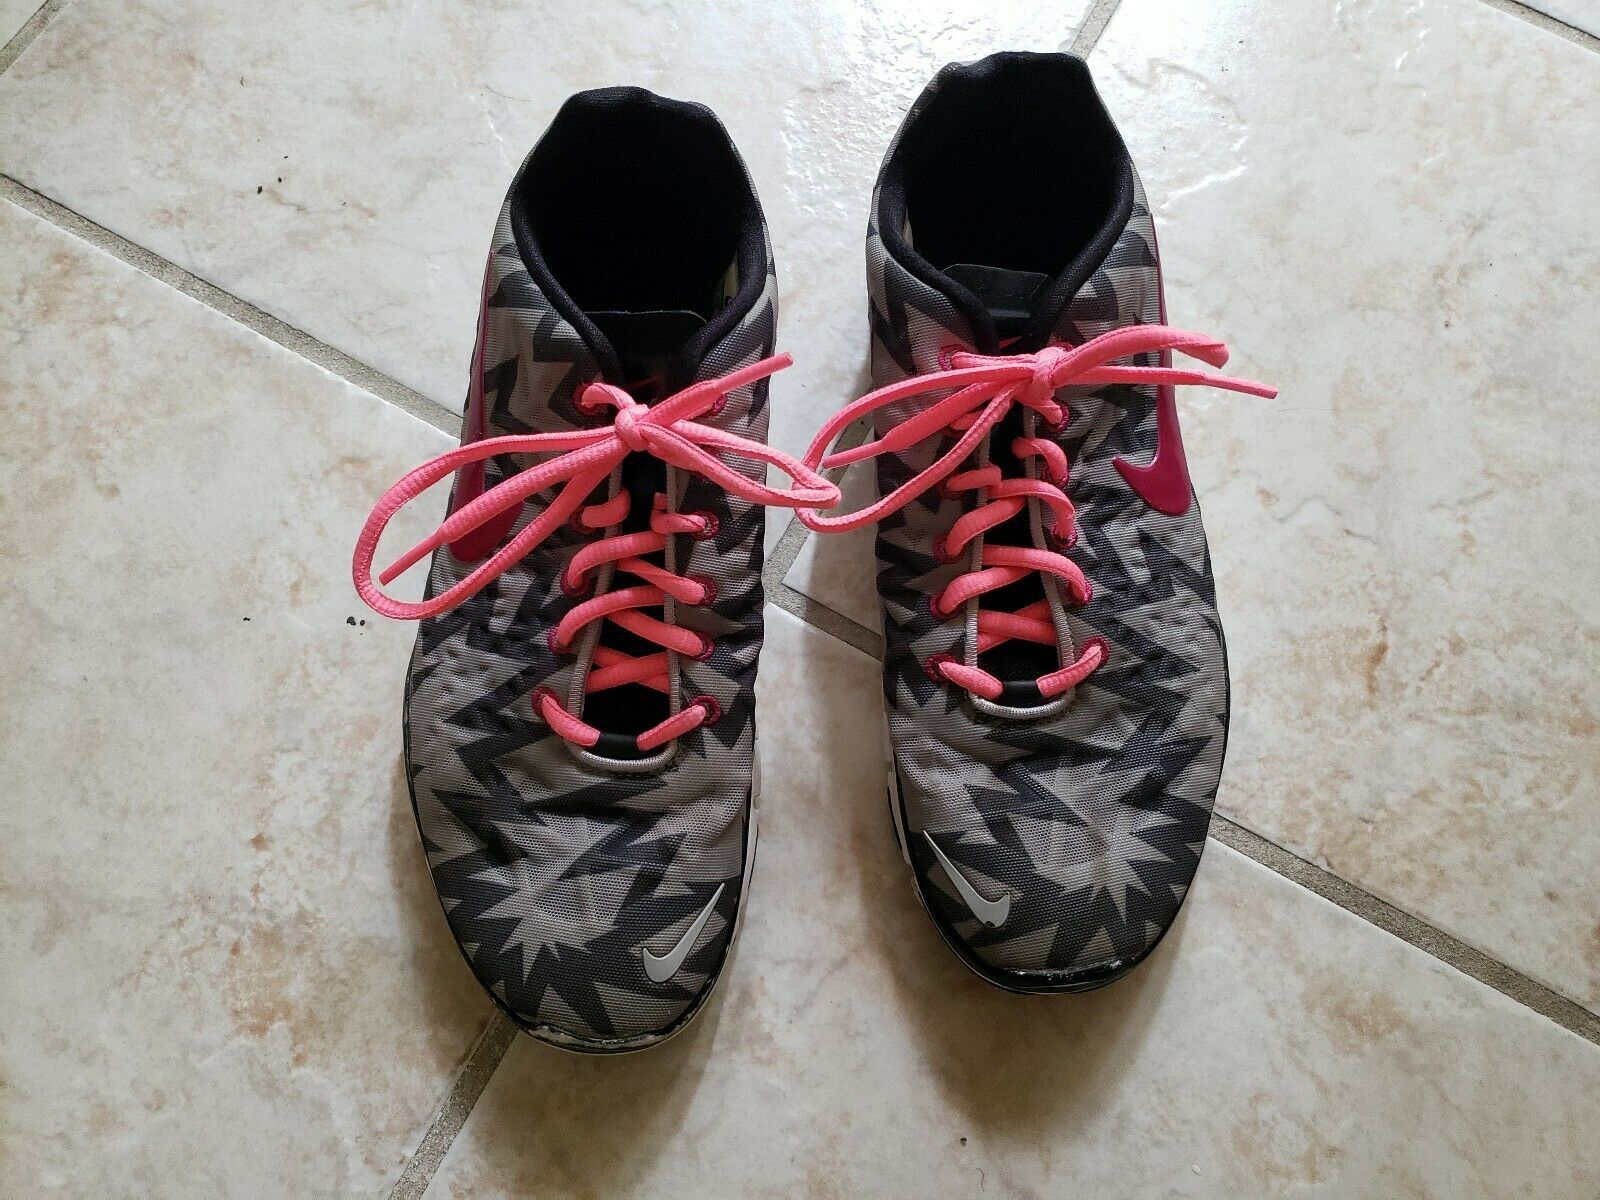 Nike Free Running Athletic Lace Up Pink/Grey Zig Zag Sneaker Shoes Womens Sz 8.5